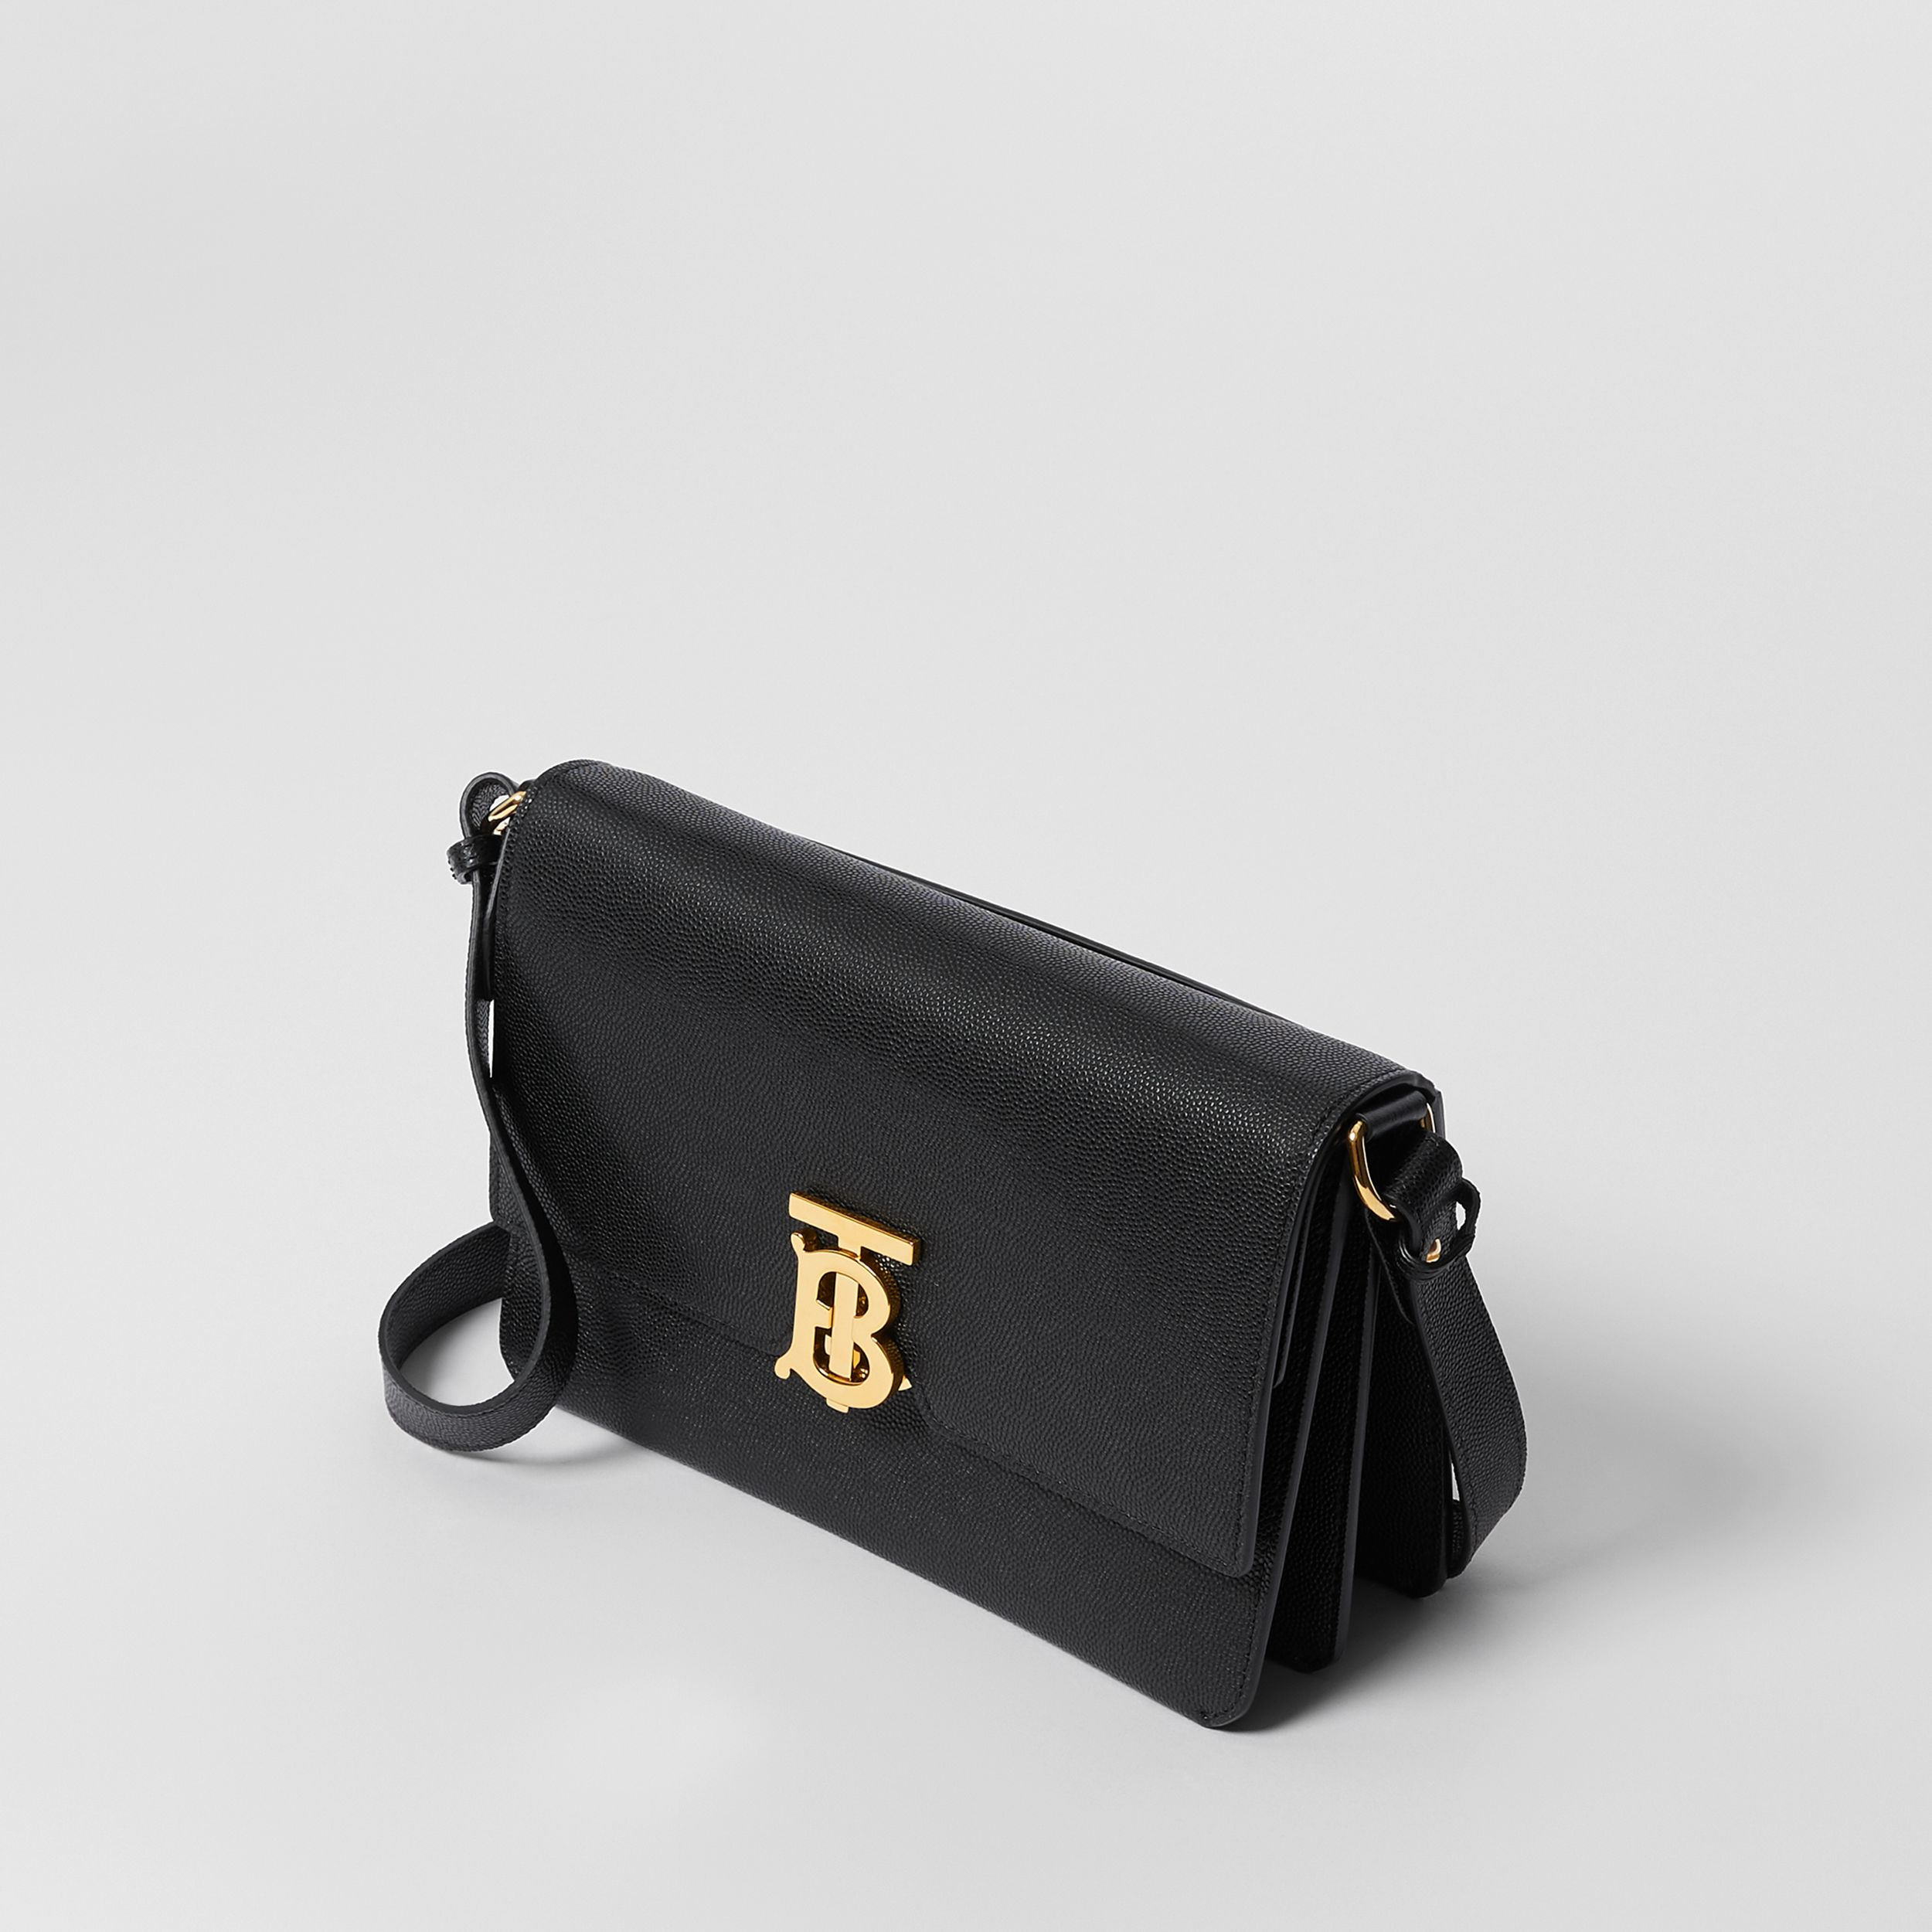 Small Monogram Motif Leather Crossbody Bag in Black - Women | Burberry Hong Kong S.A.R. - 4